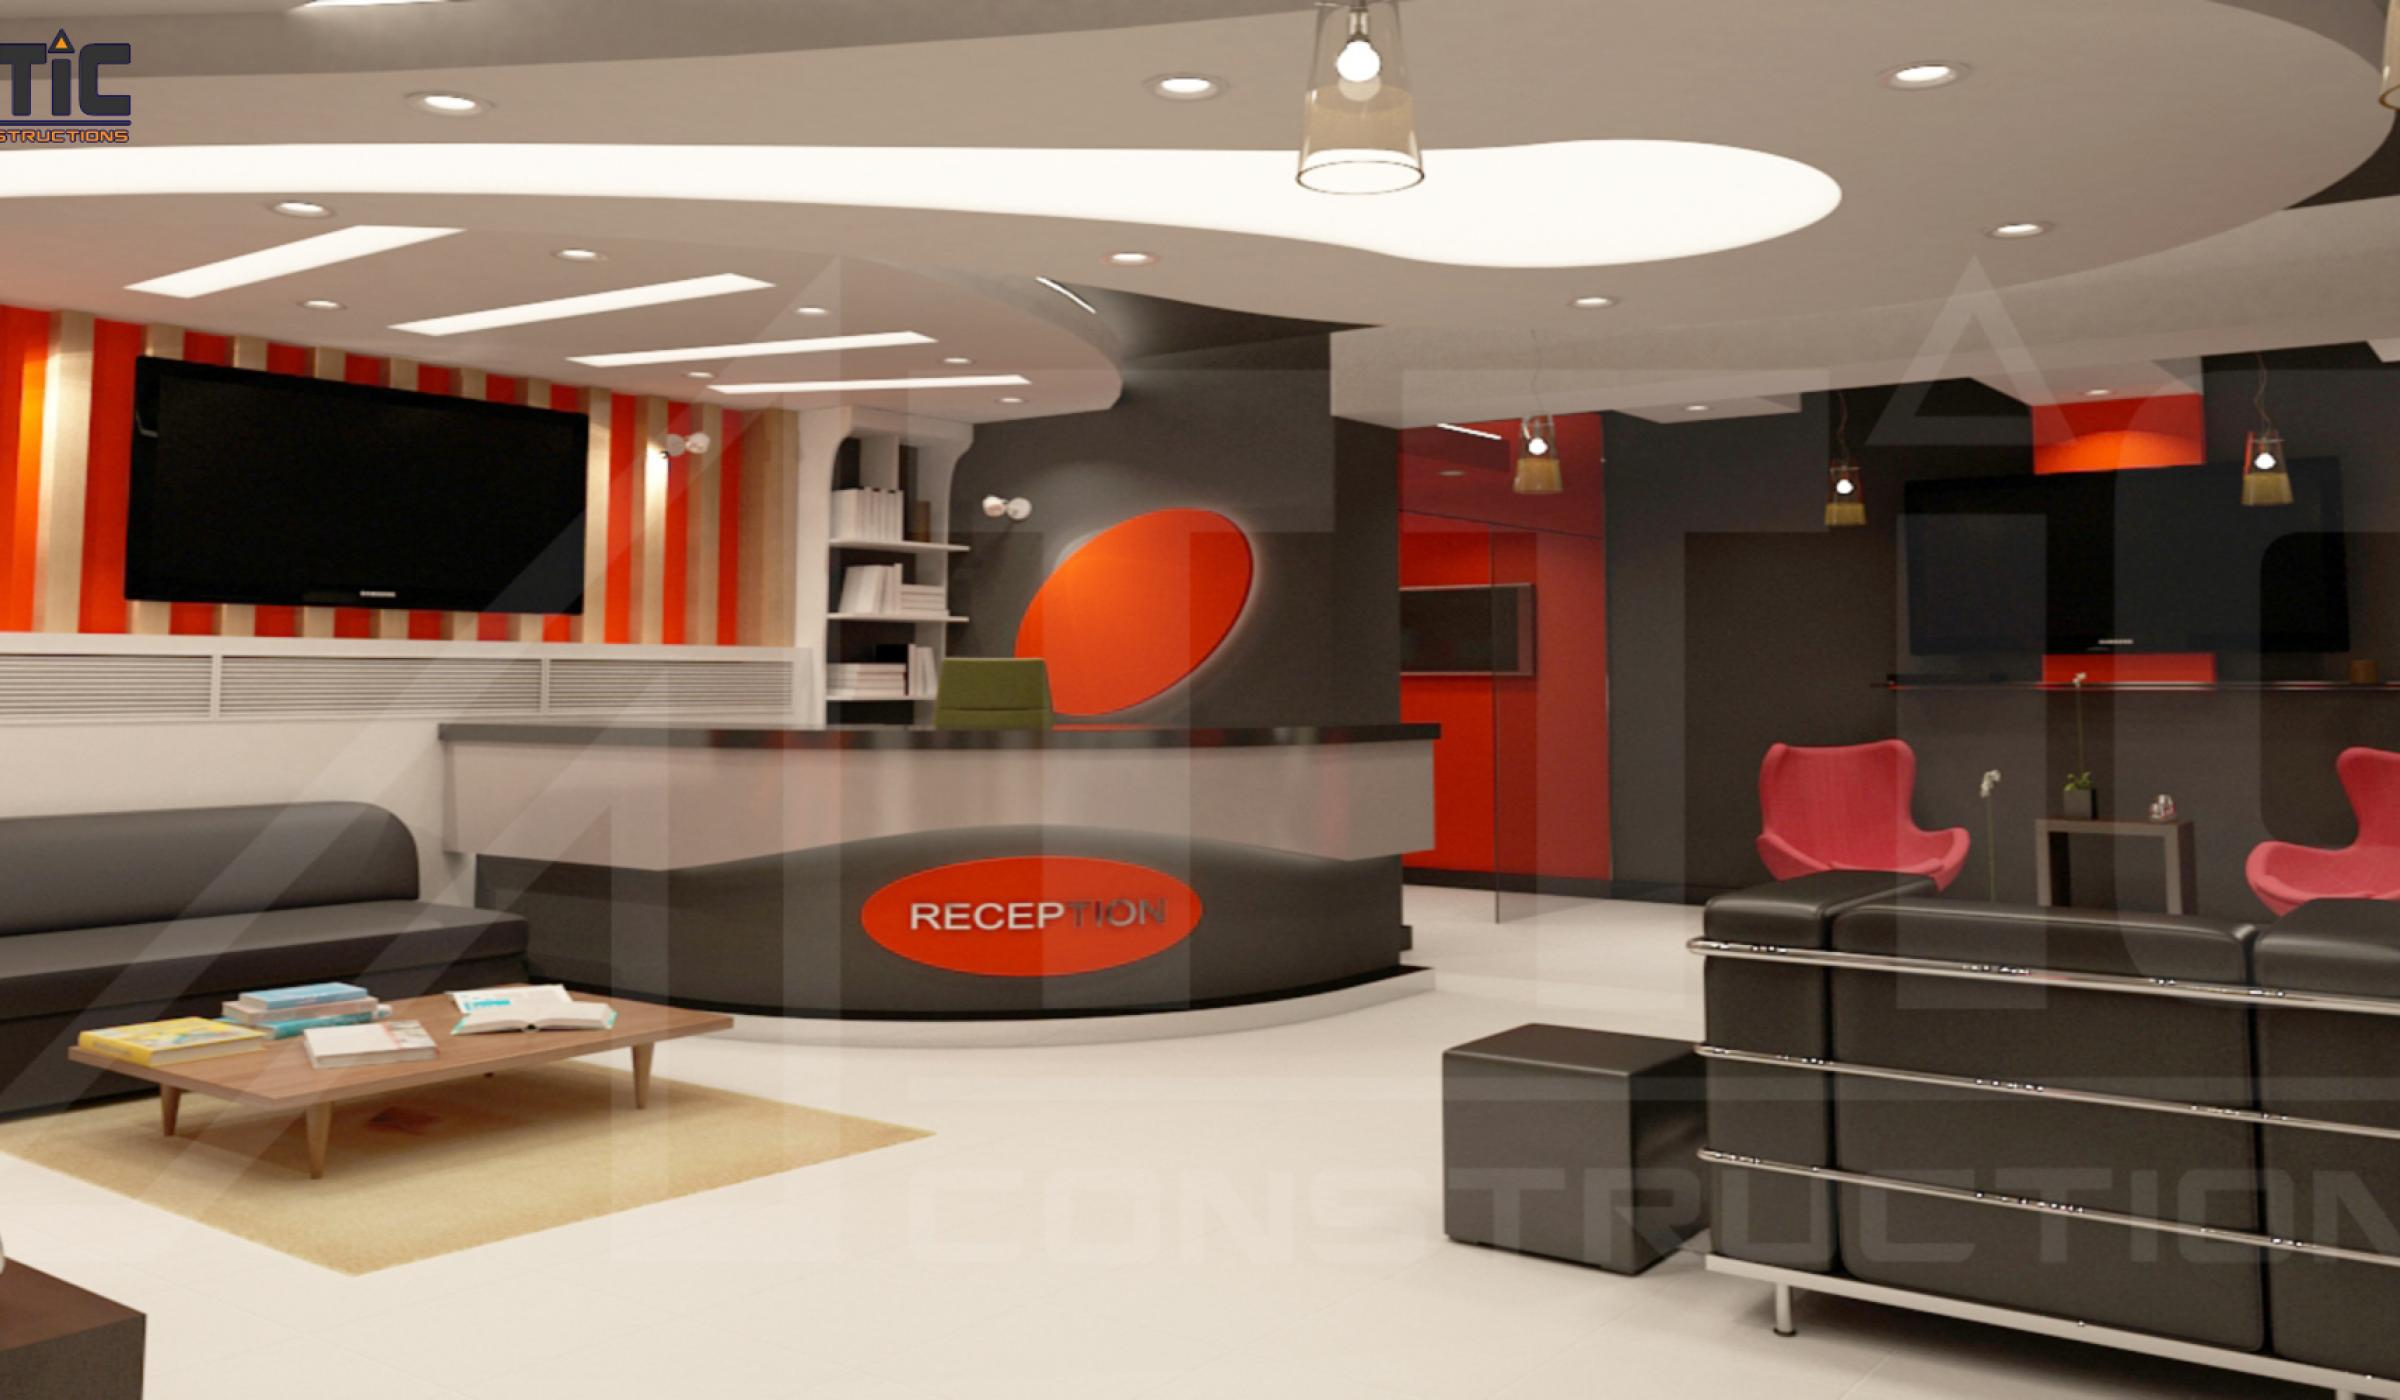 Company in Kuwait   Social Buildingz   The New Way to Build Your Home